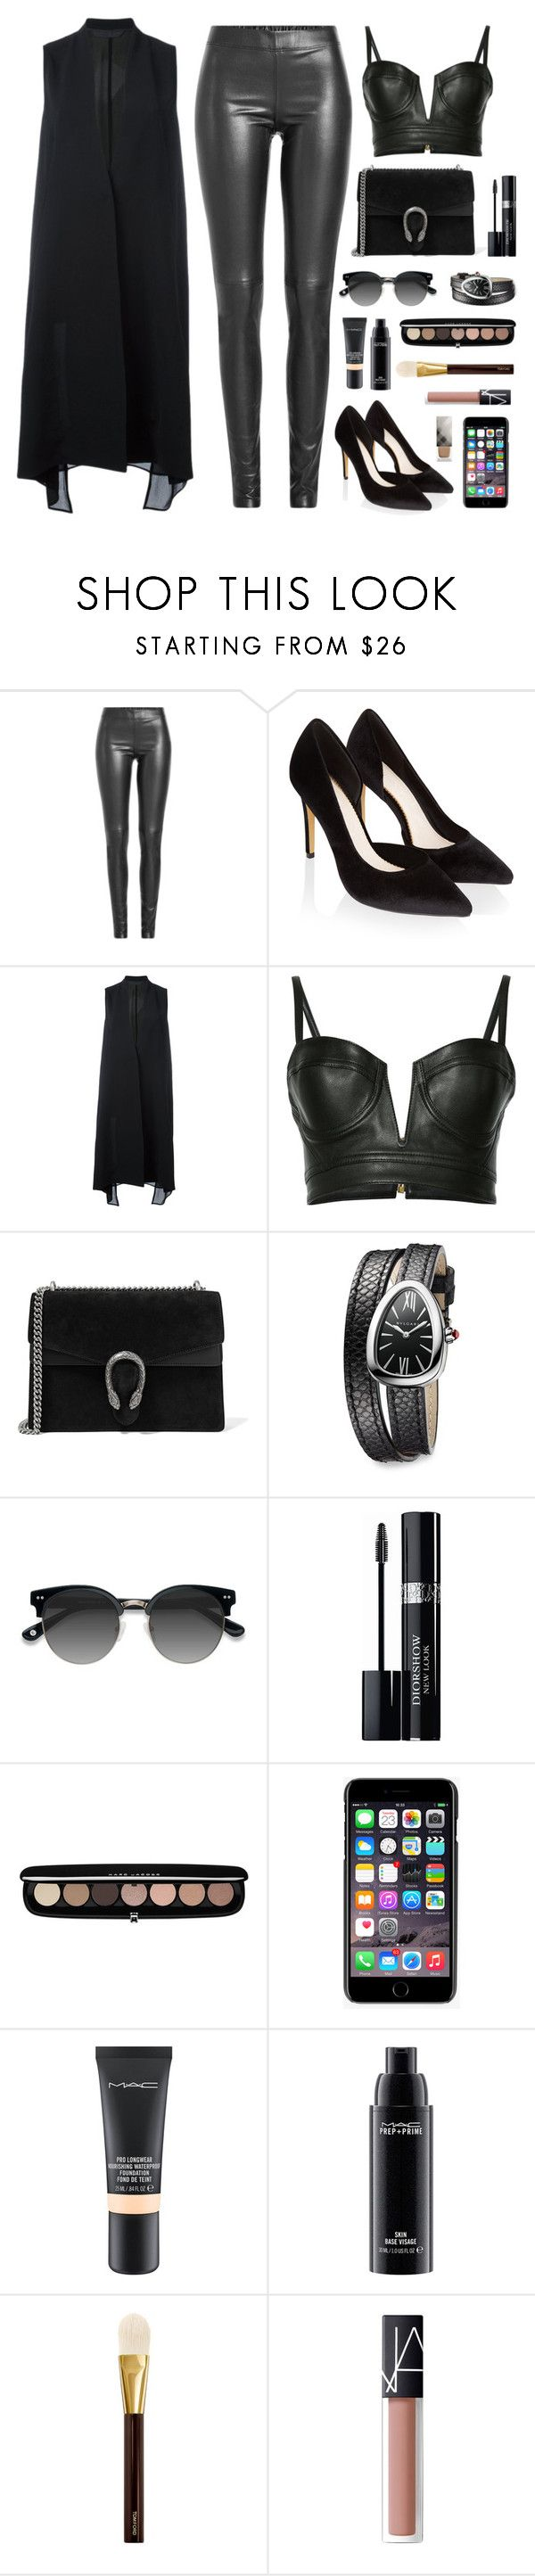 """""""Long vest + leather"""" by jessblock on Polyvore featuring Joseph, Monsoon, demoo parkchoonmoo, Balmain, Gucci, Bulgari, Ace, Christian Dior, Marc Jacobs and Dolce&Gabbana"""